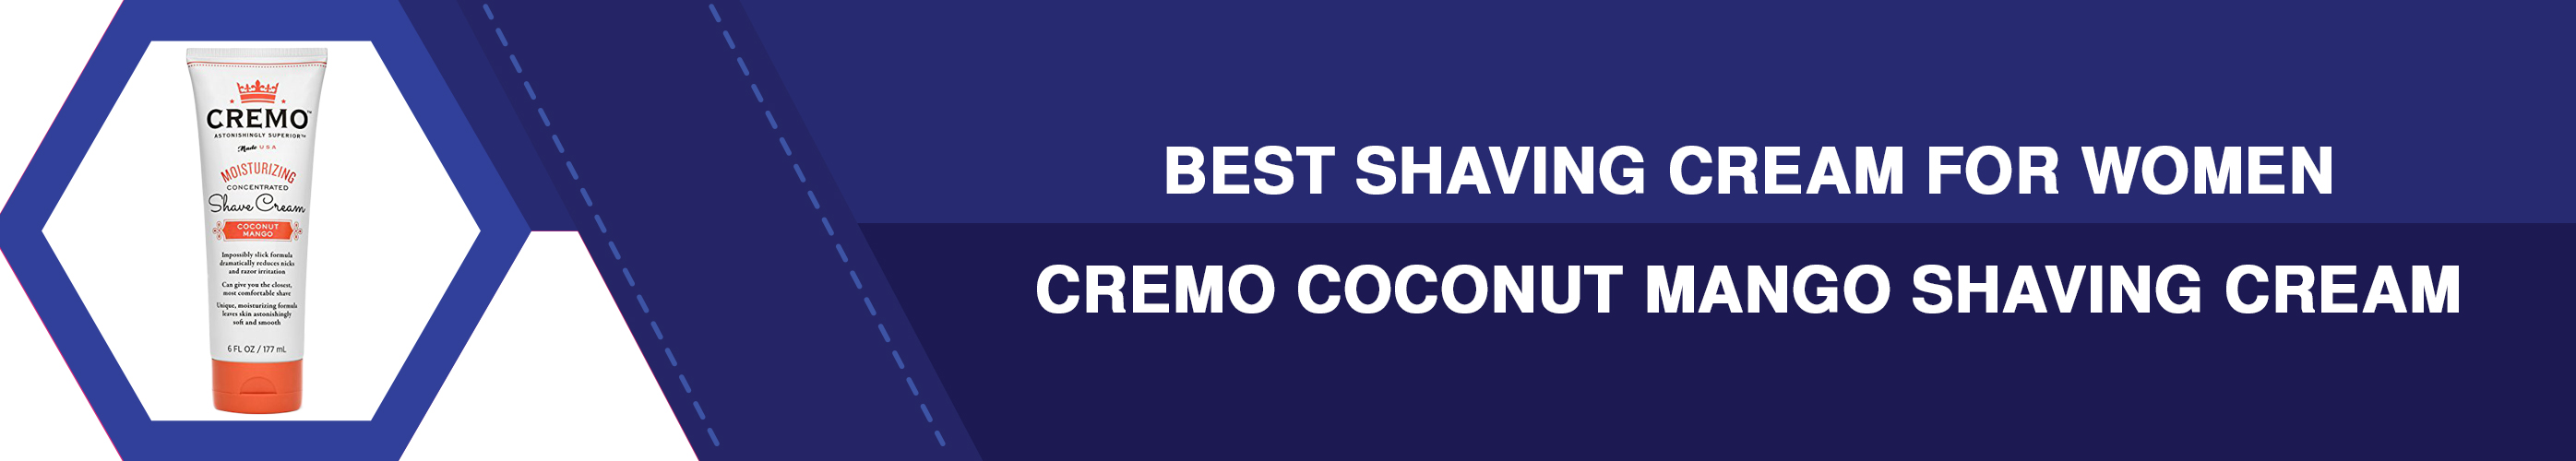 Cremo-Coconut-Mango-Shaving-Cream